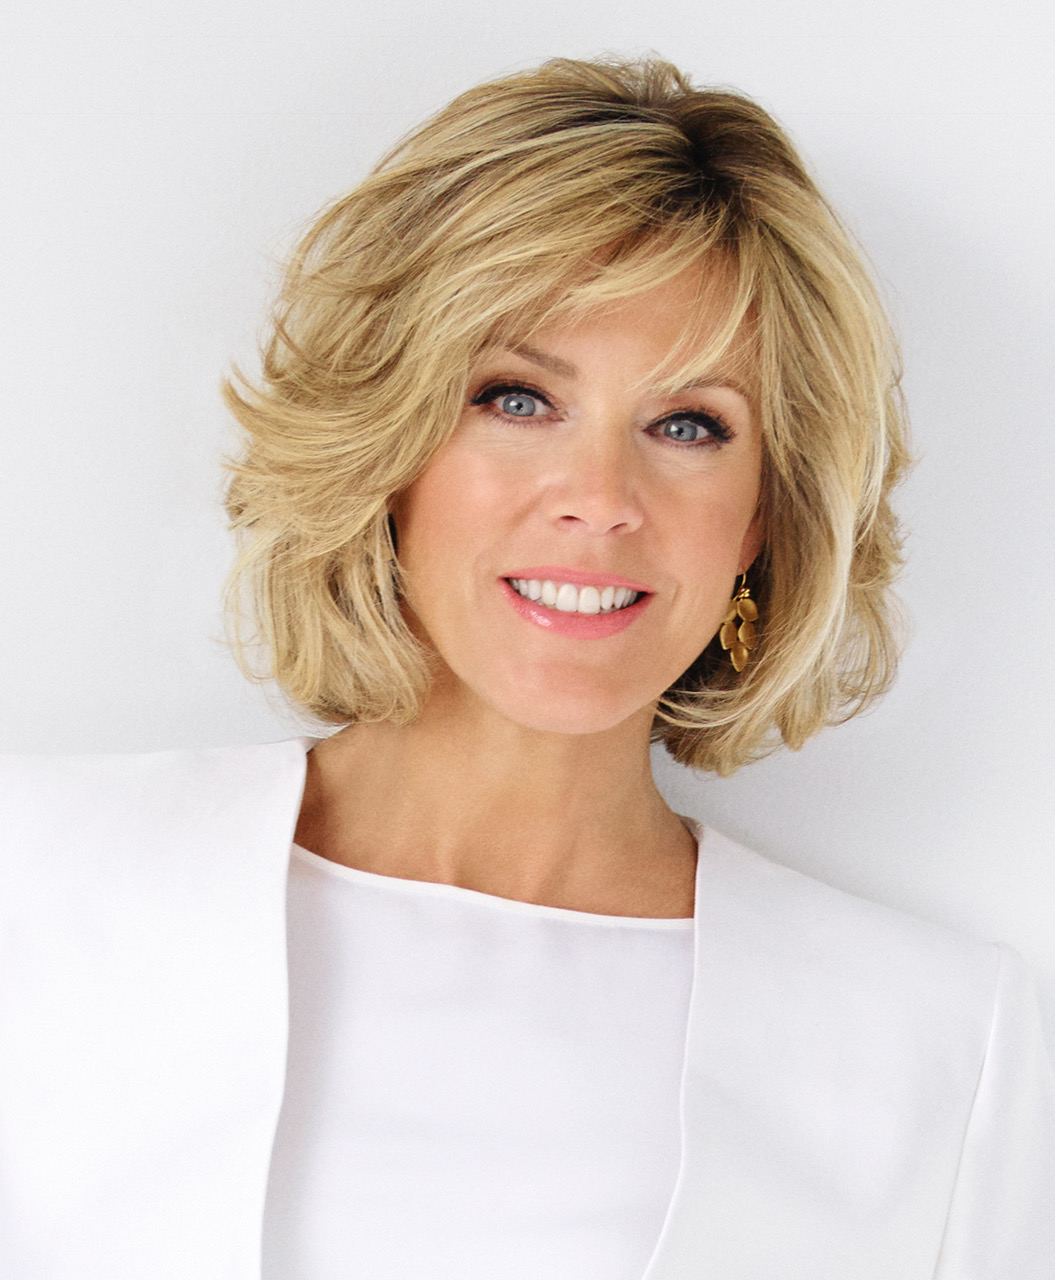 Deborah Norville Hairstyle 2017 - Hairstyles By Unixcode